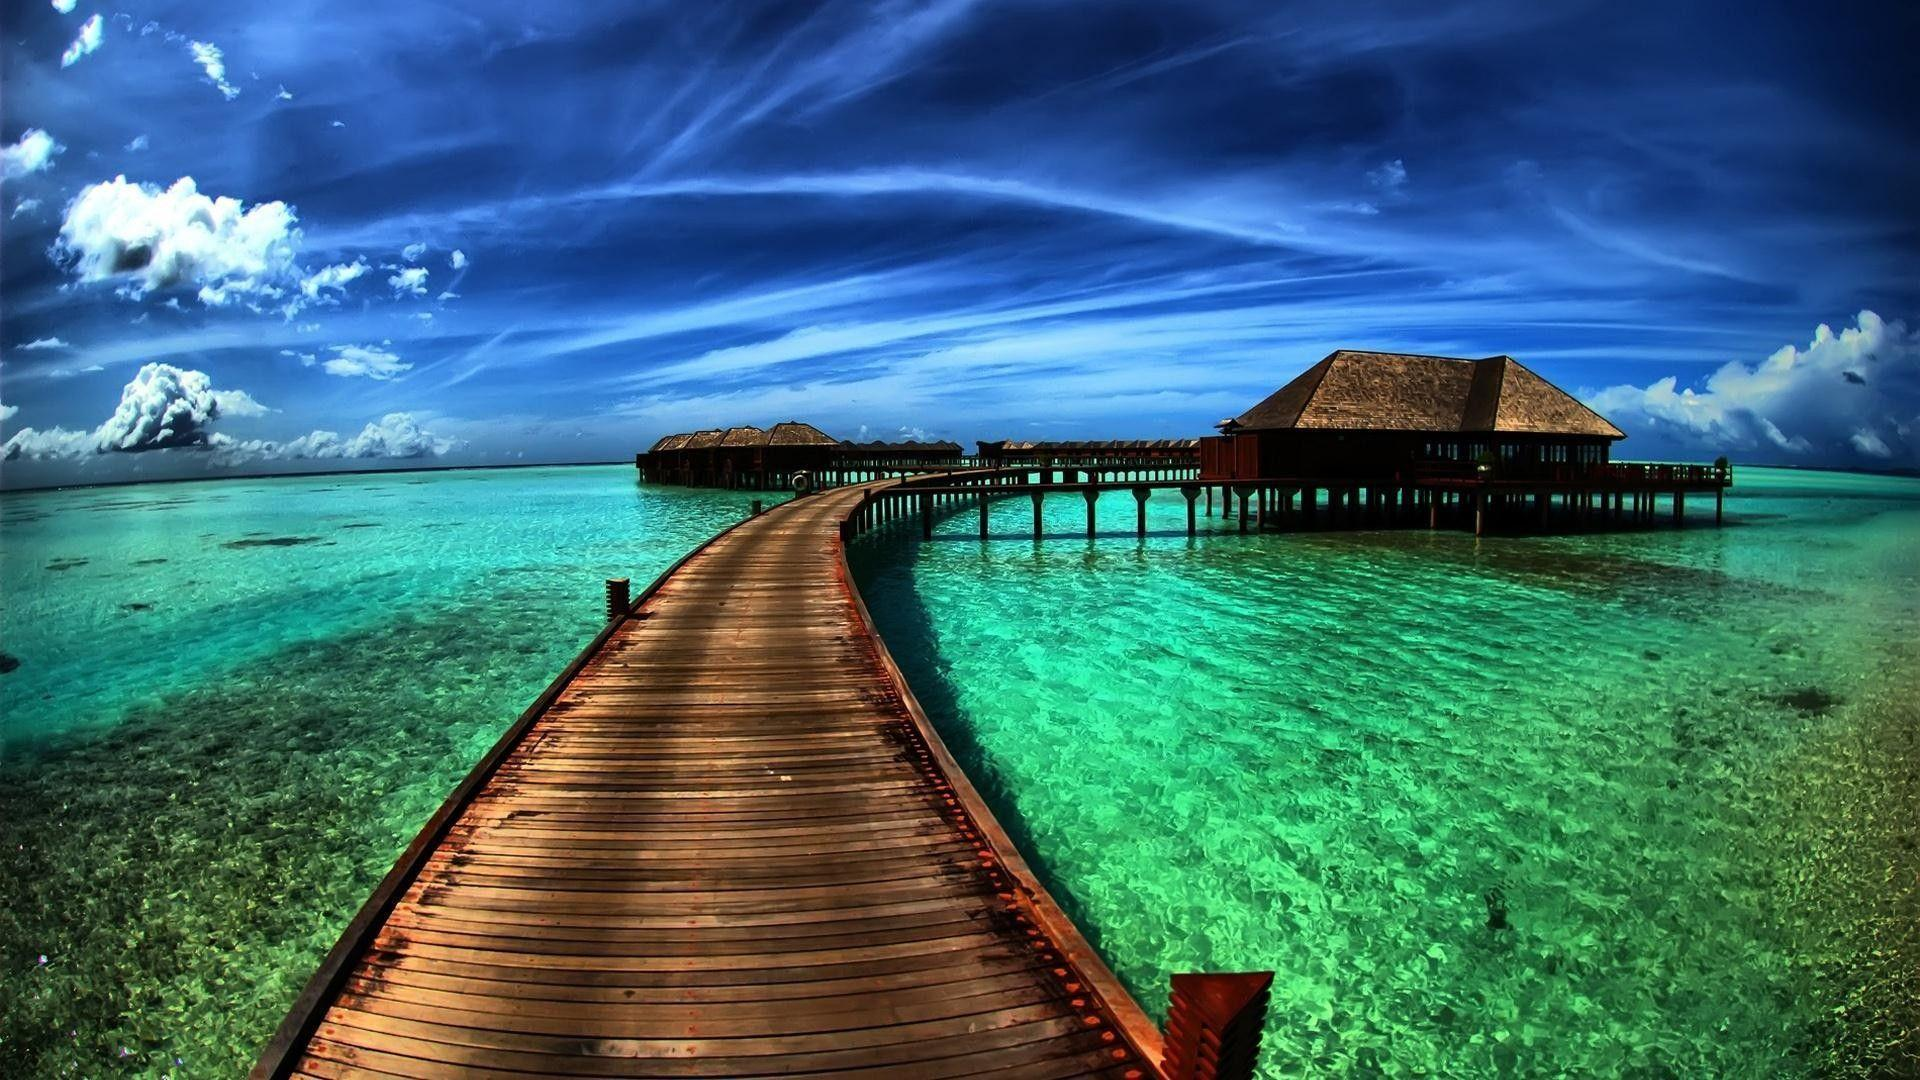 45 Incredible Collection Of Beach Wallpapers